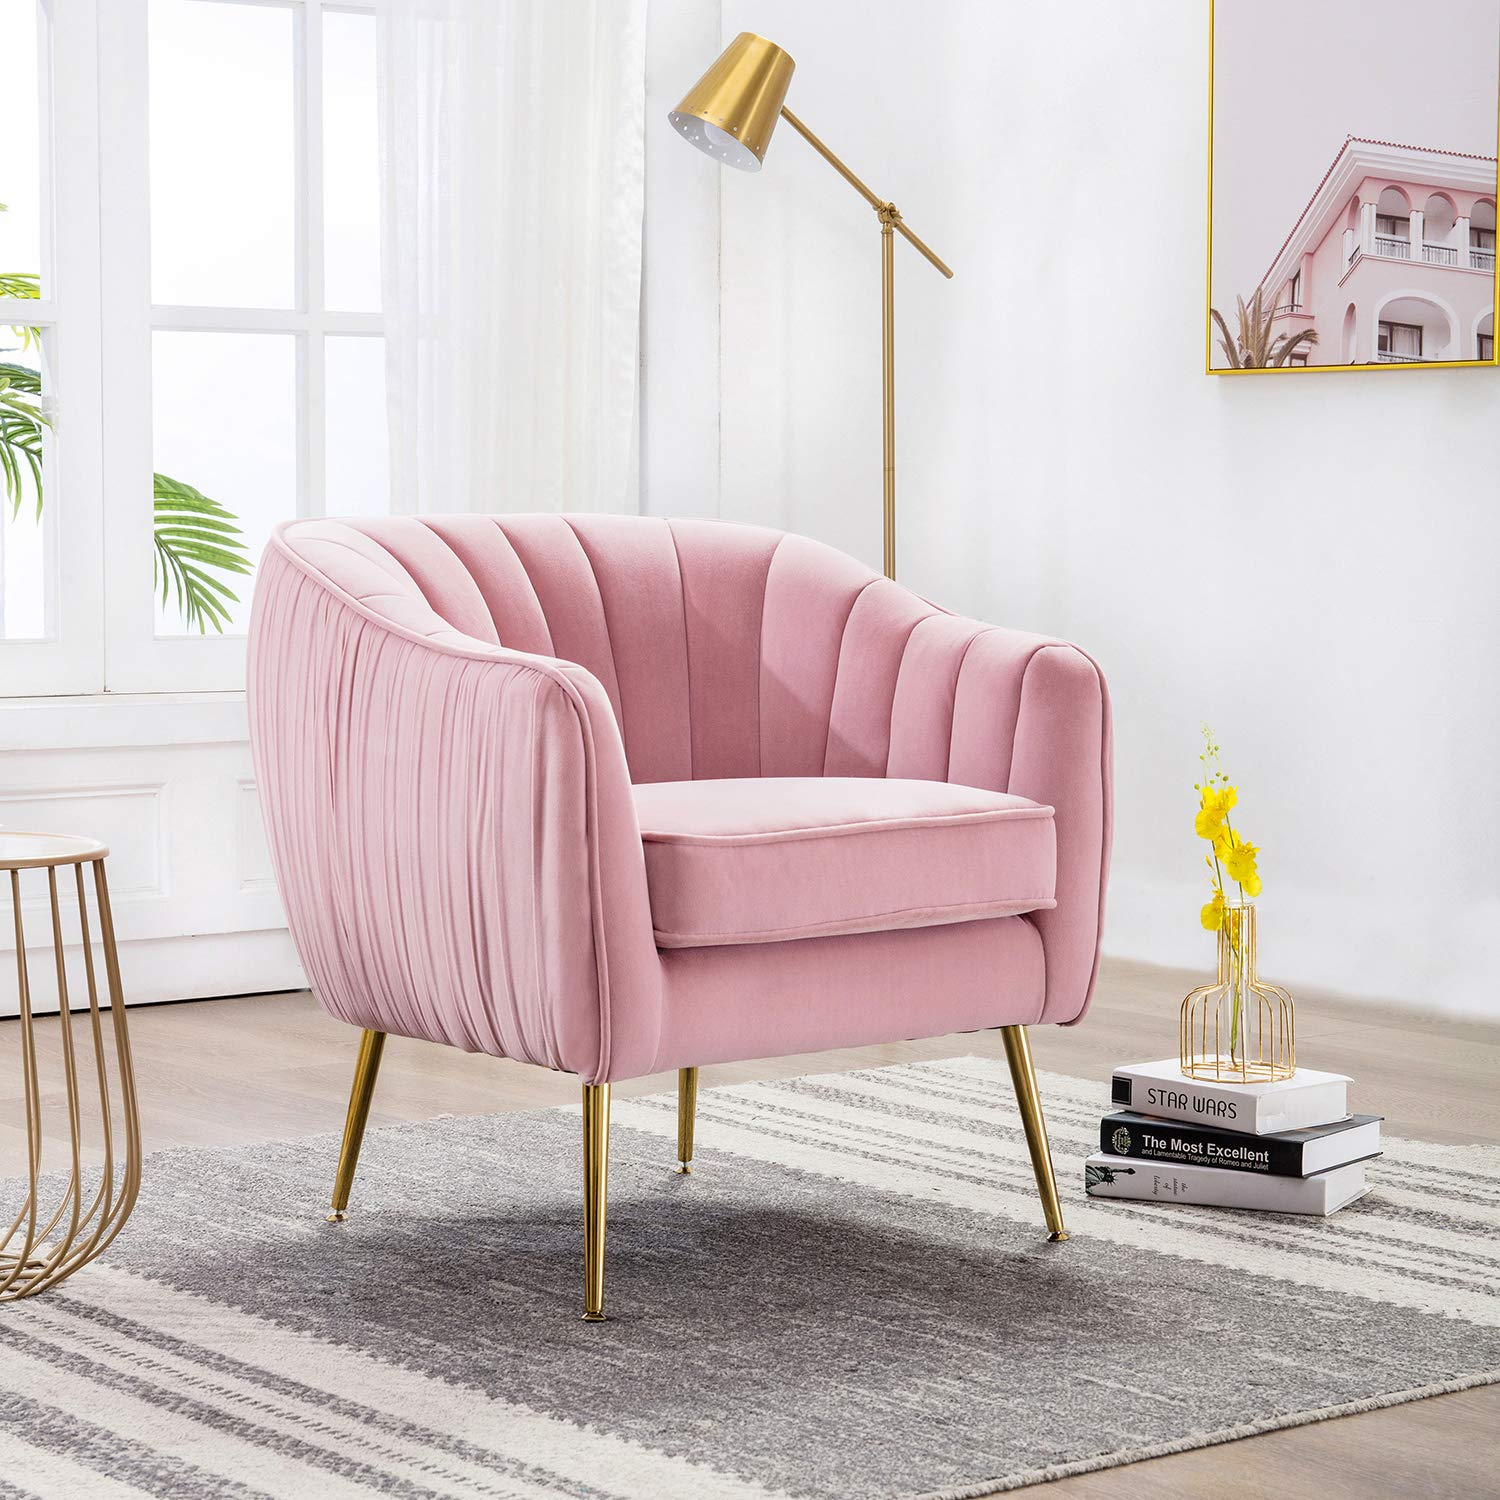 Altrobene Modern Luxury Accent Barrel Chair, Velvet Living Room Armchair with Gold Finished Legs, Pink